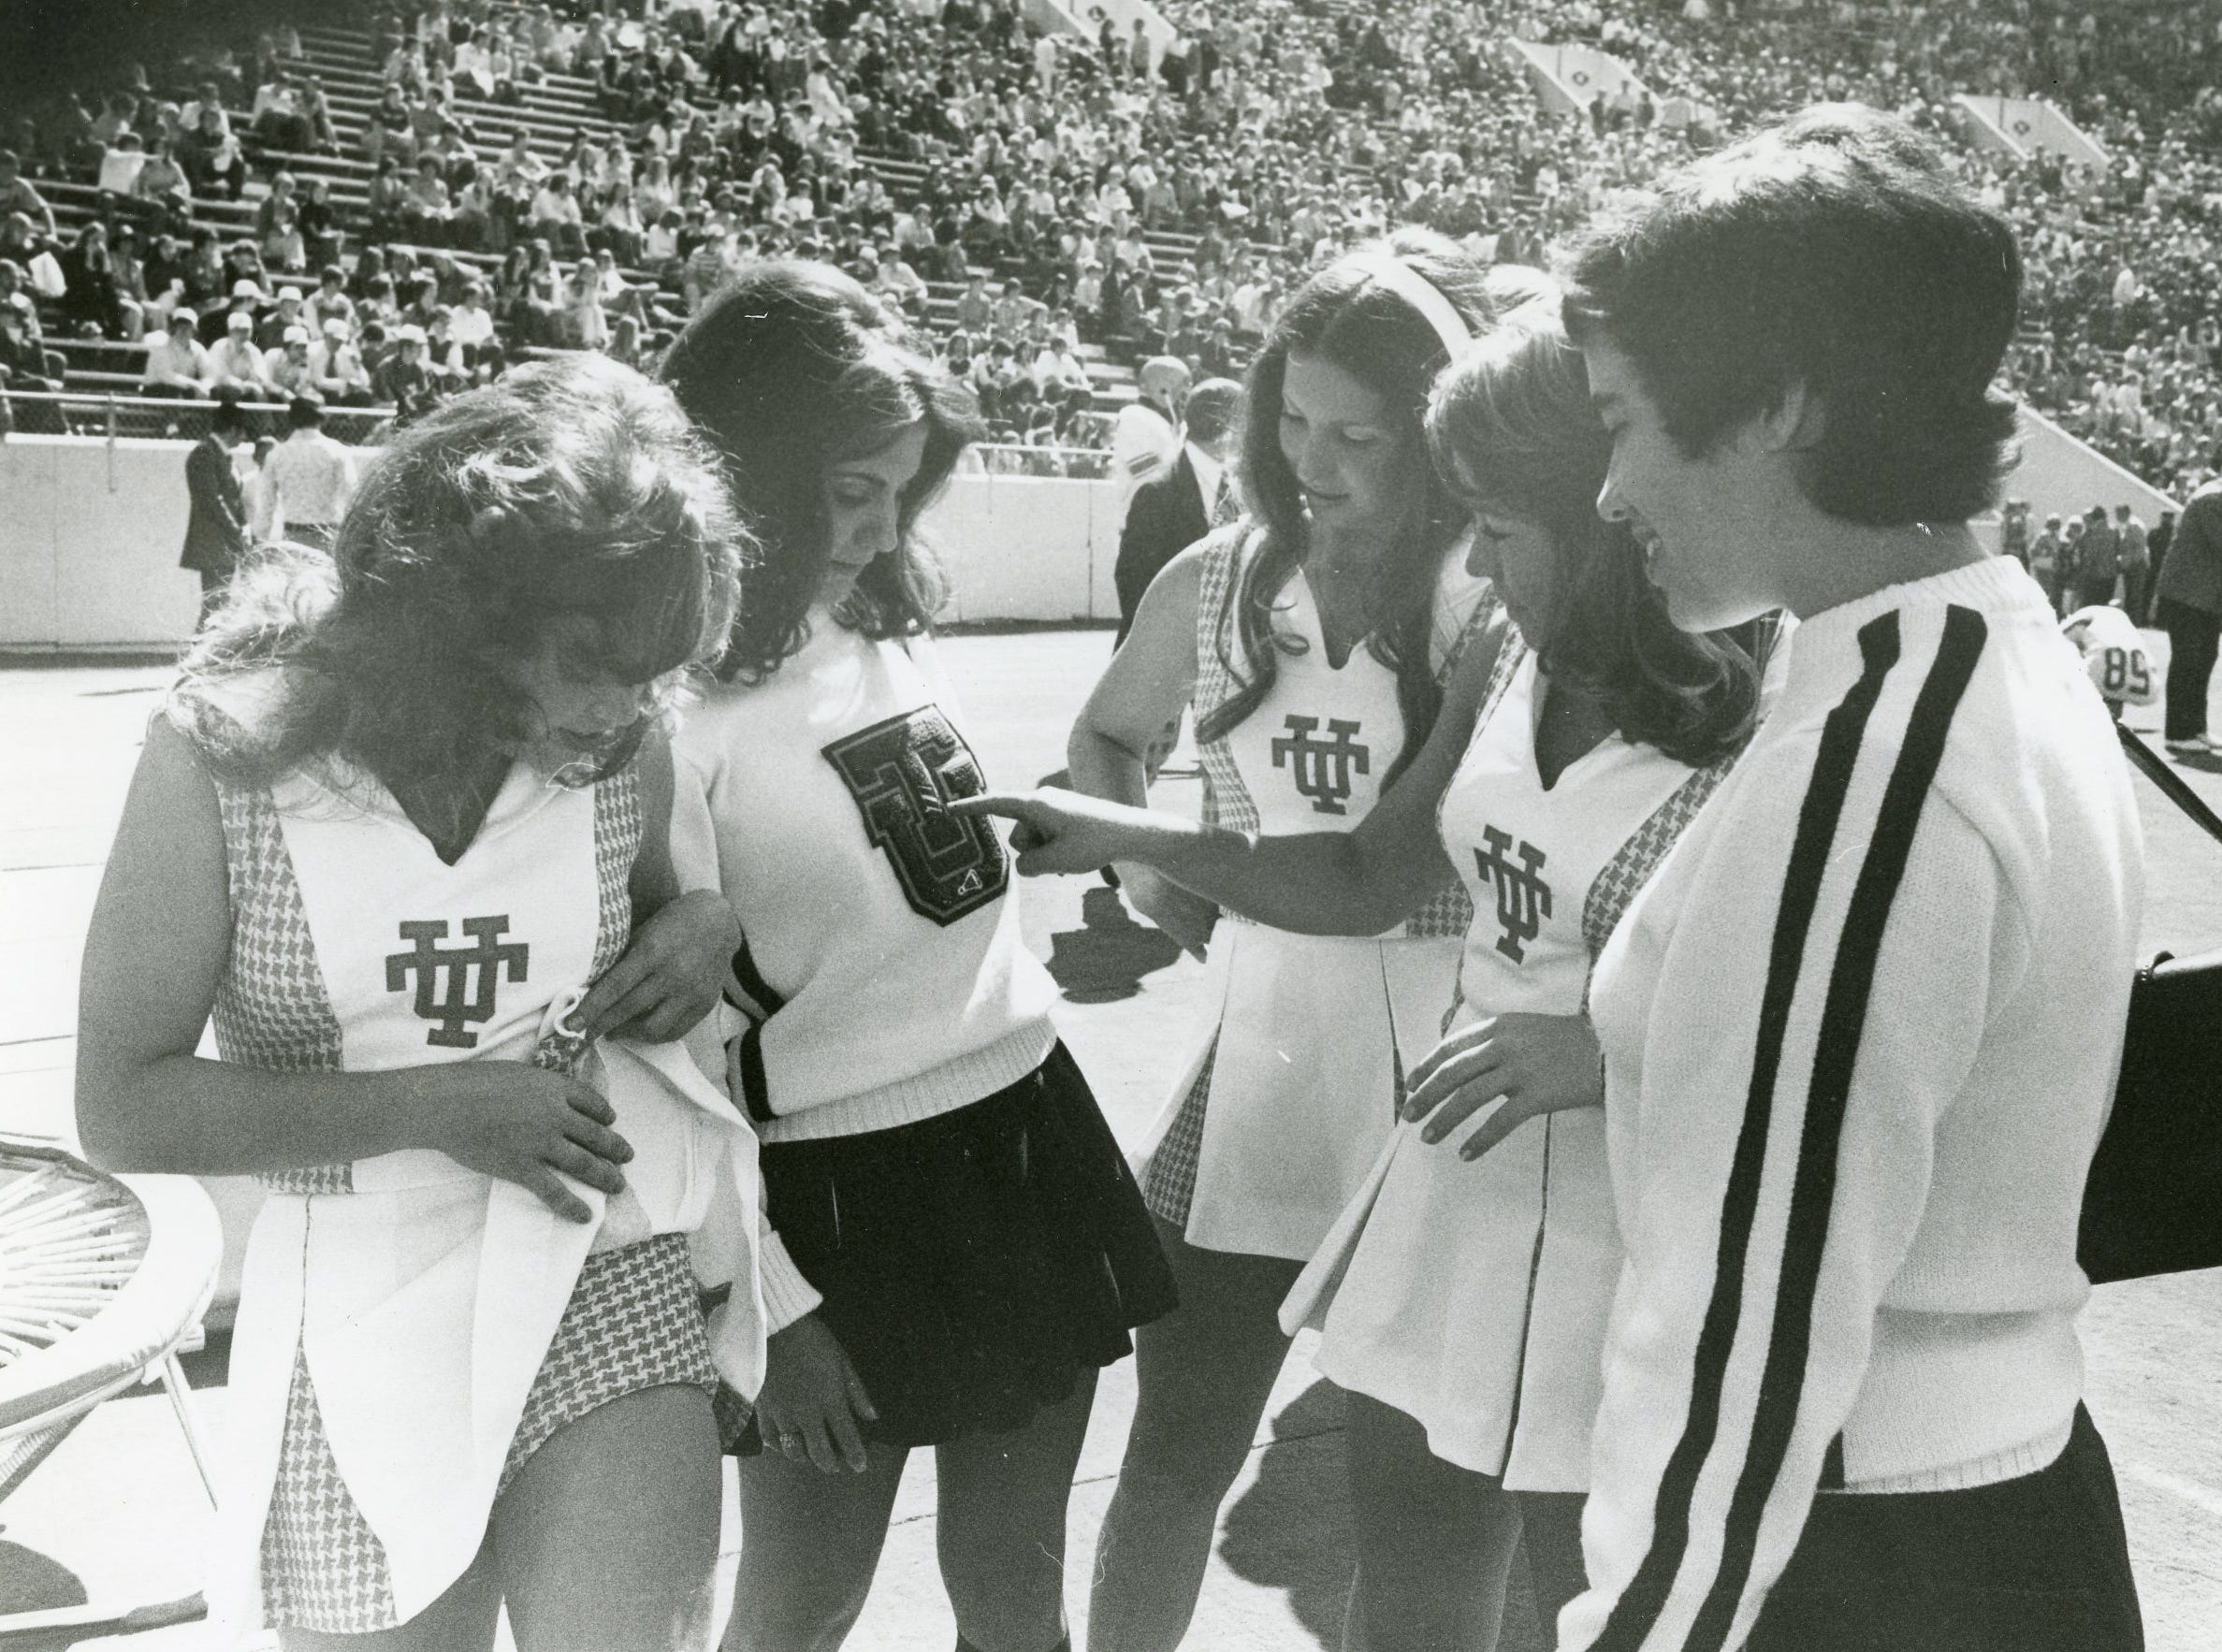 UT cheerleaders chat with TU (Tulsa) cheerleaders. Pictured are Mary Hanes Lancaster, Mary Ann Dunnagan (TU), Vicki Hayes, Rosemary Keim and Carolyn Ely (TU).